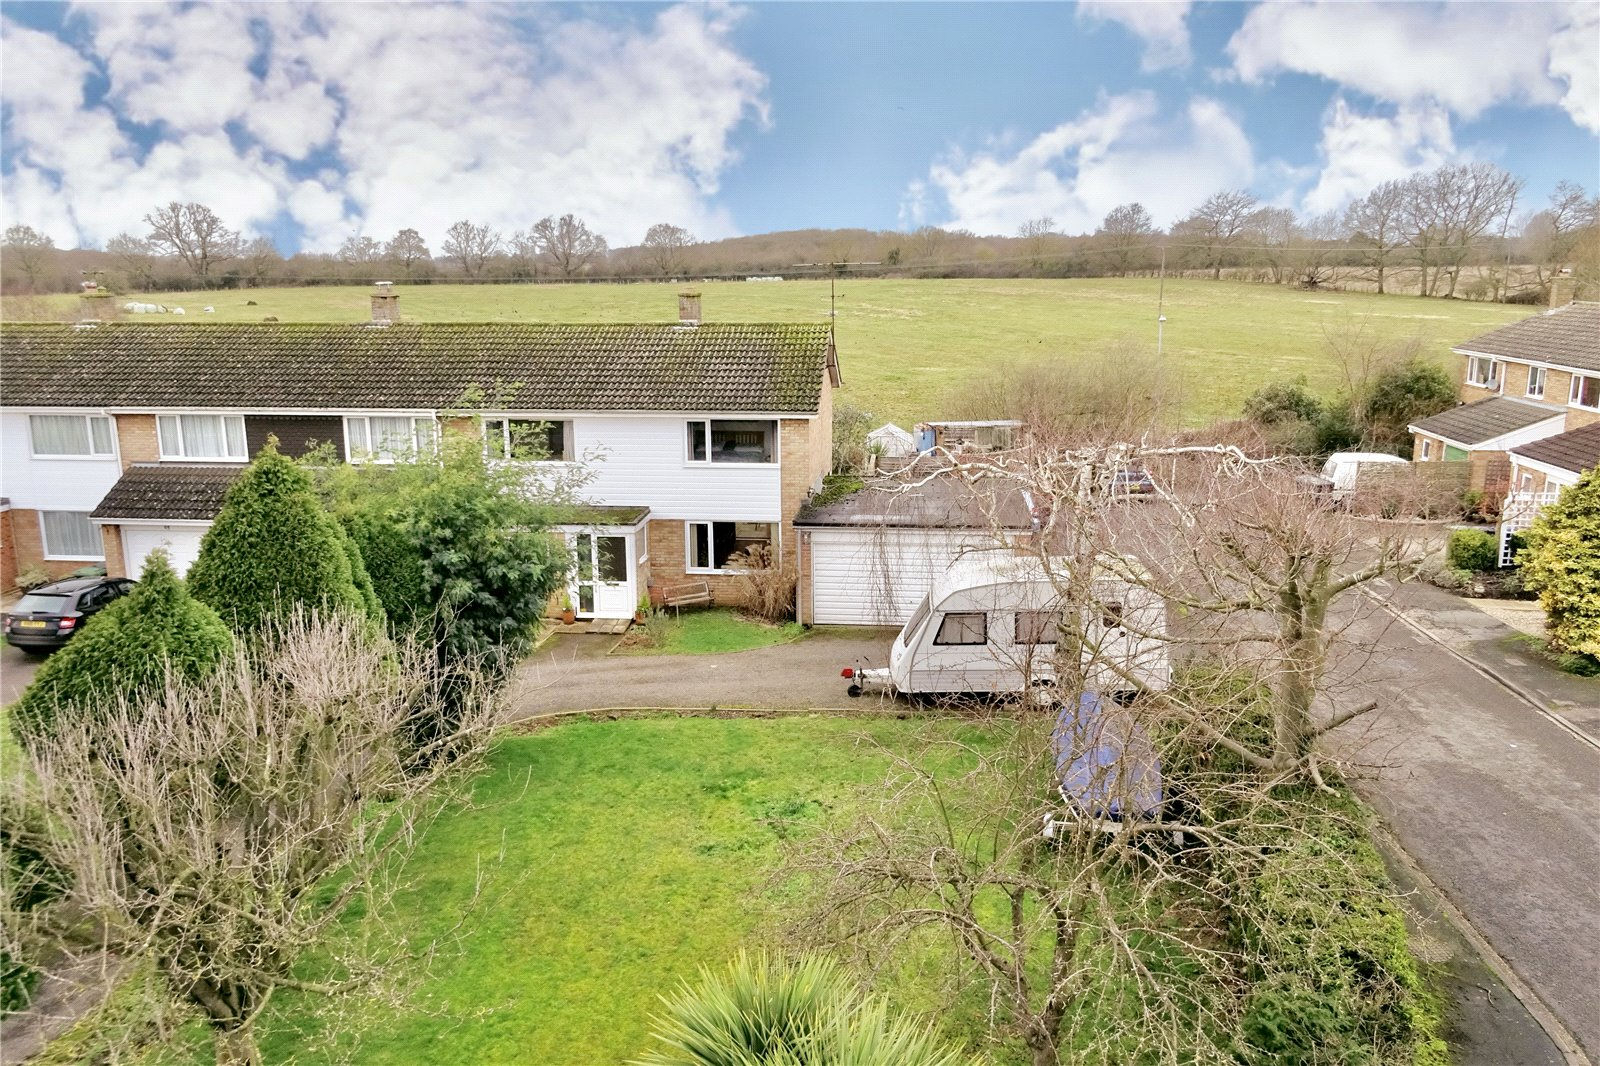 3 bed house for sale in Green Acres, Gamlingay  - Property Image 4